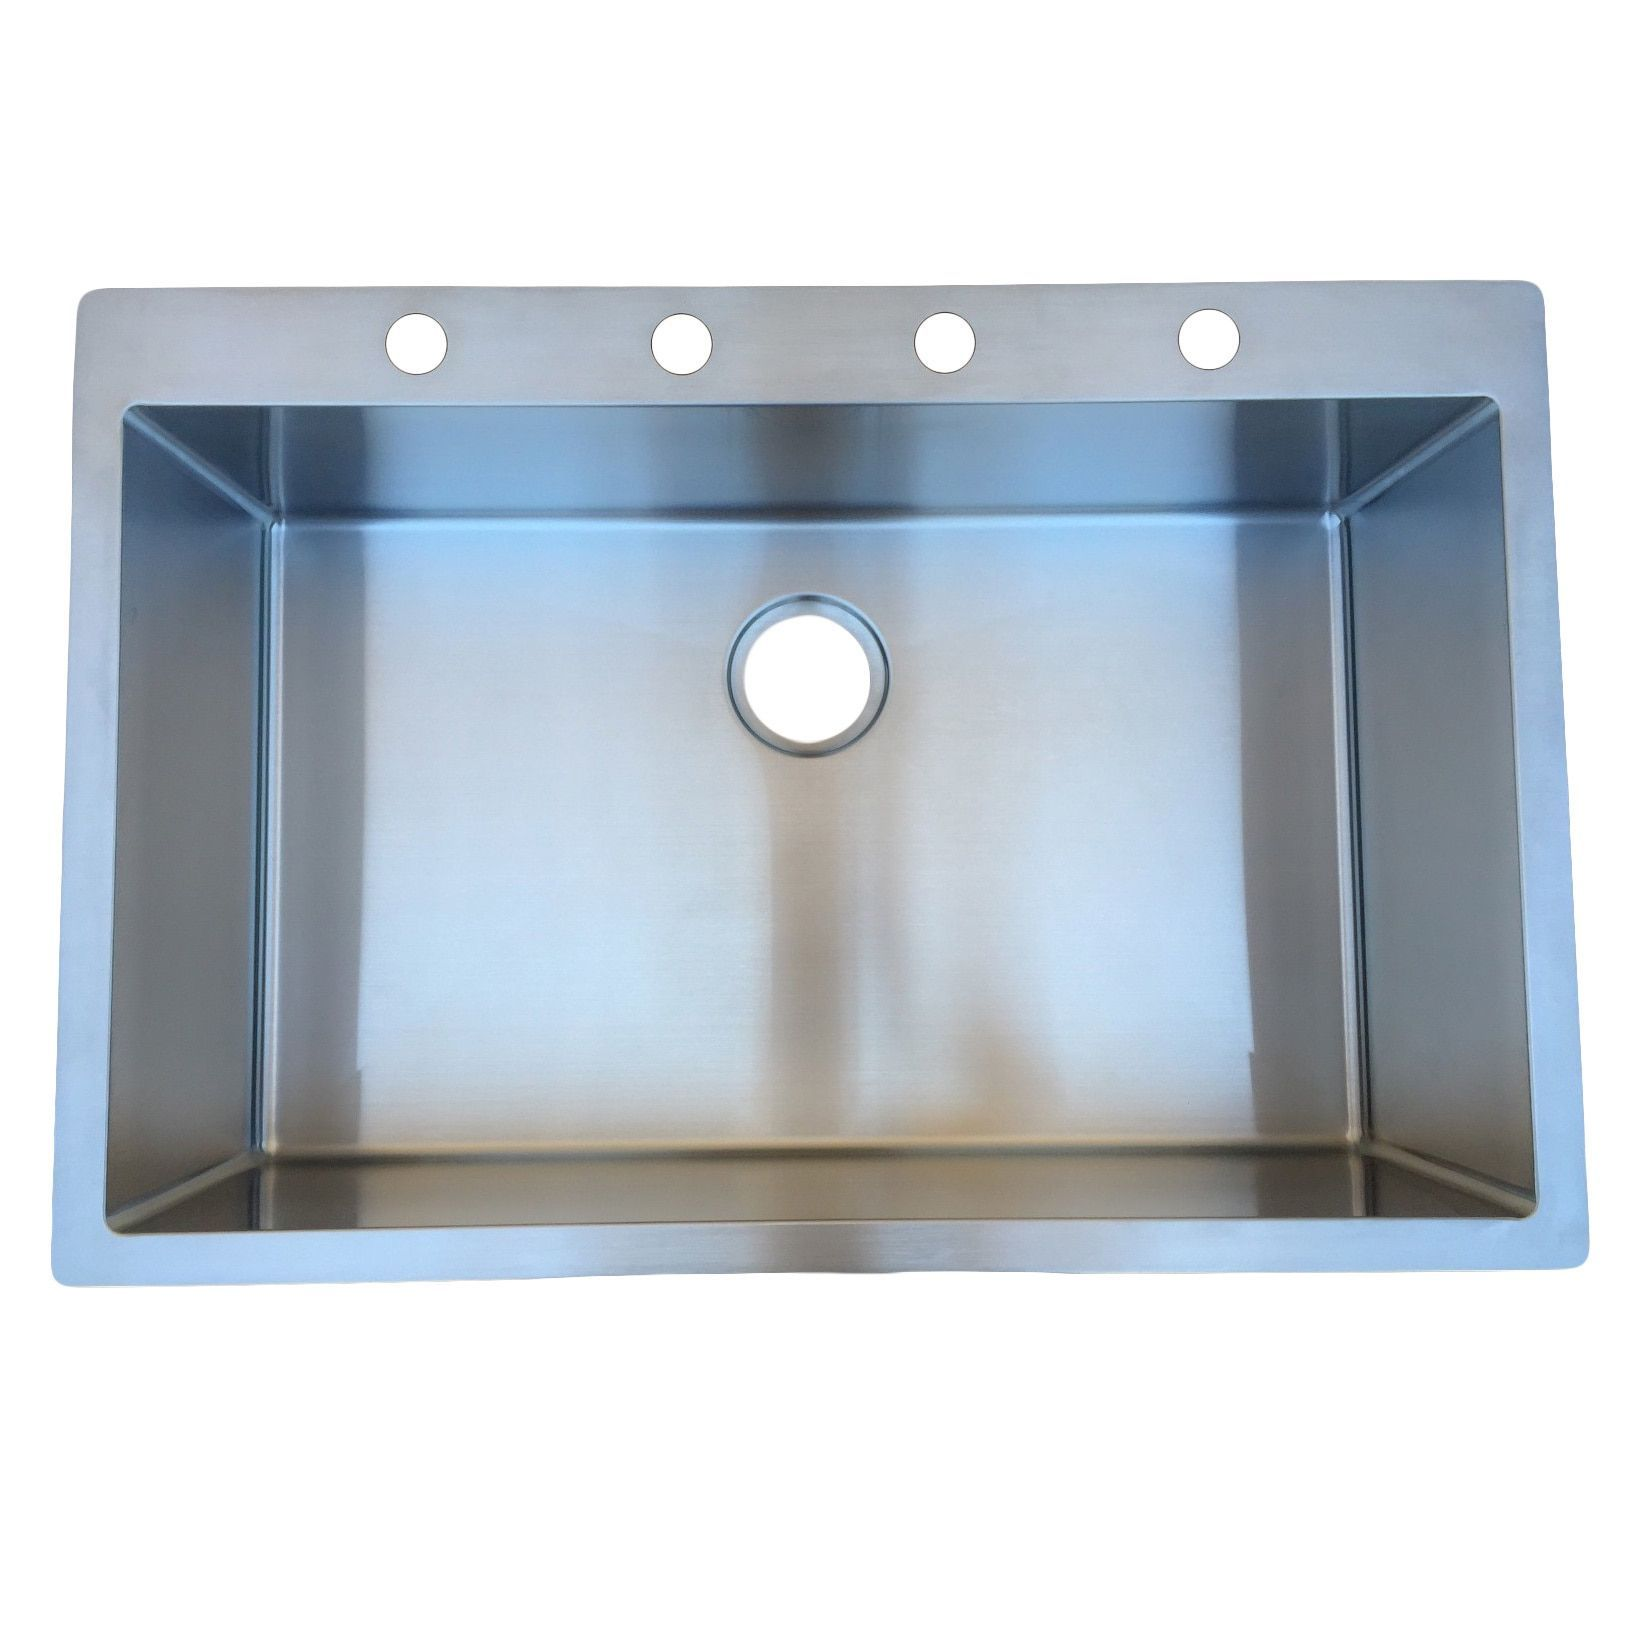 StarStar 33 X 22 Top-mount Drop-in Stainless Steel Single Bowl ...